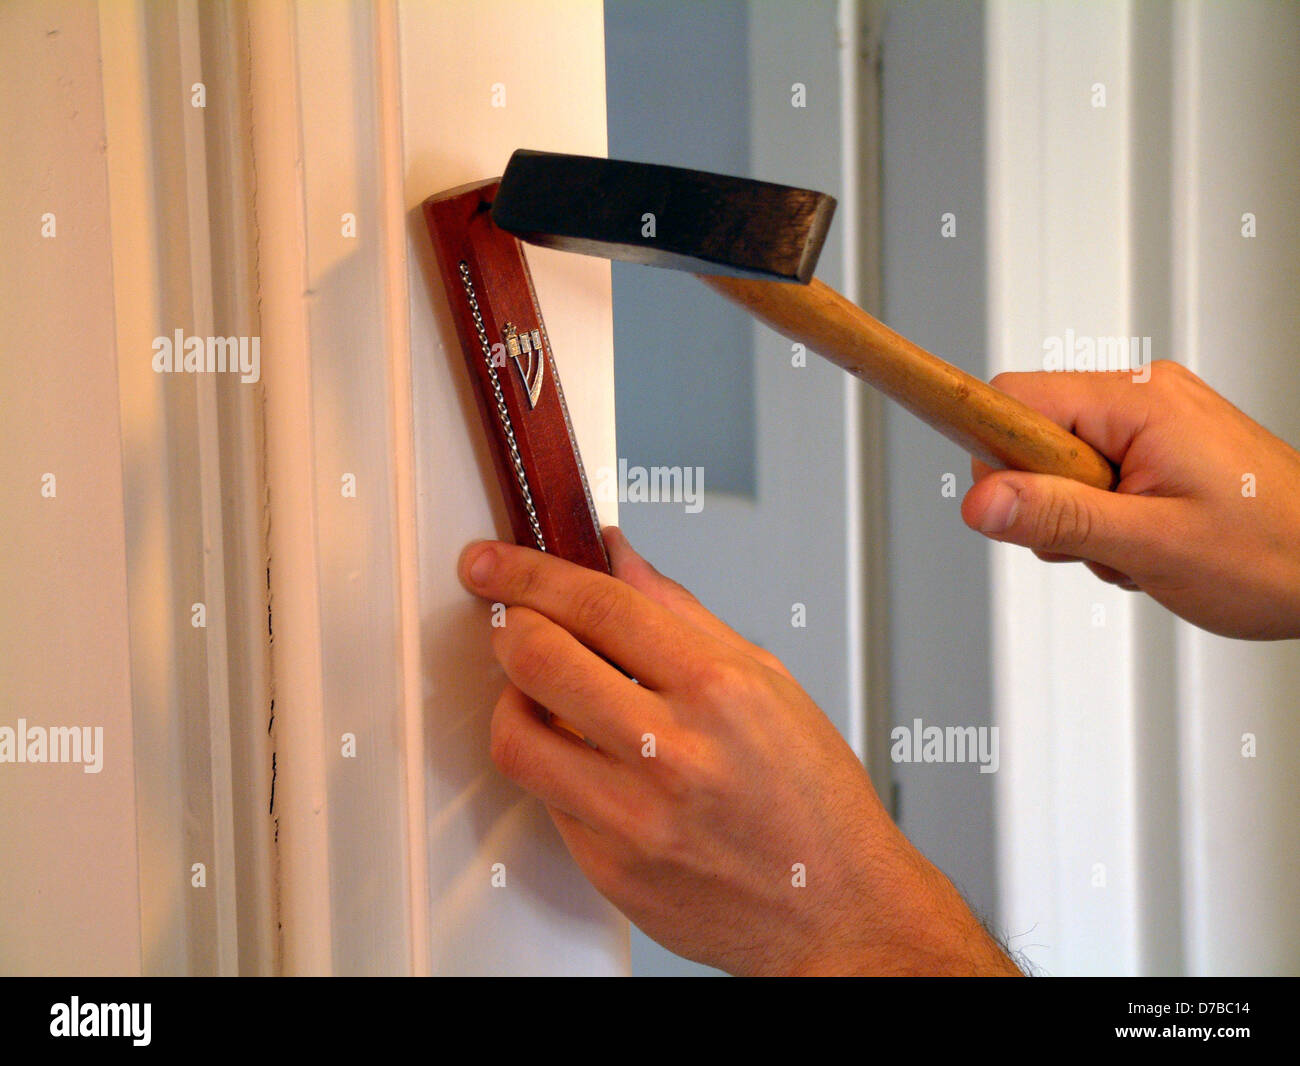 Attaching a mezuzah to a crossbar of a door - Stock Image & Mezuzah Door Stock Photos \u0026 Mezuzah Door Stock Images - Alamy